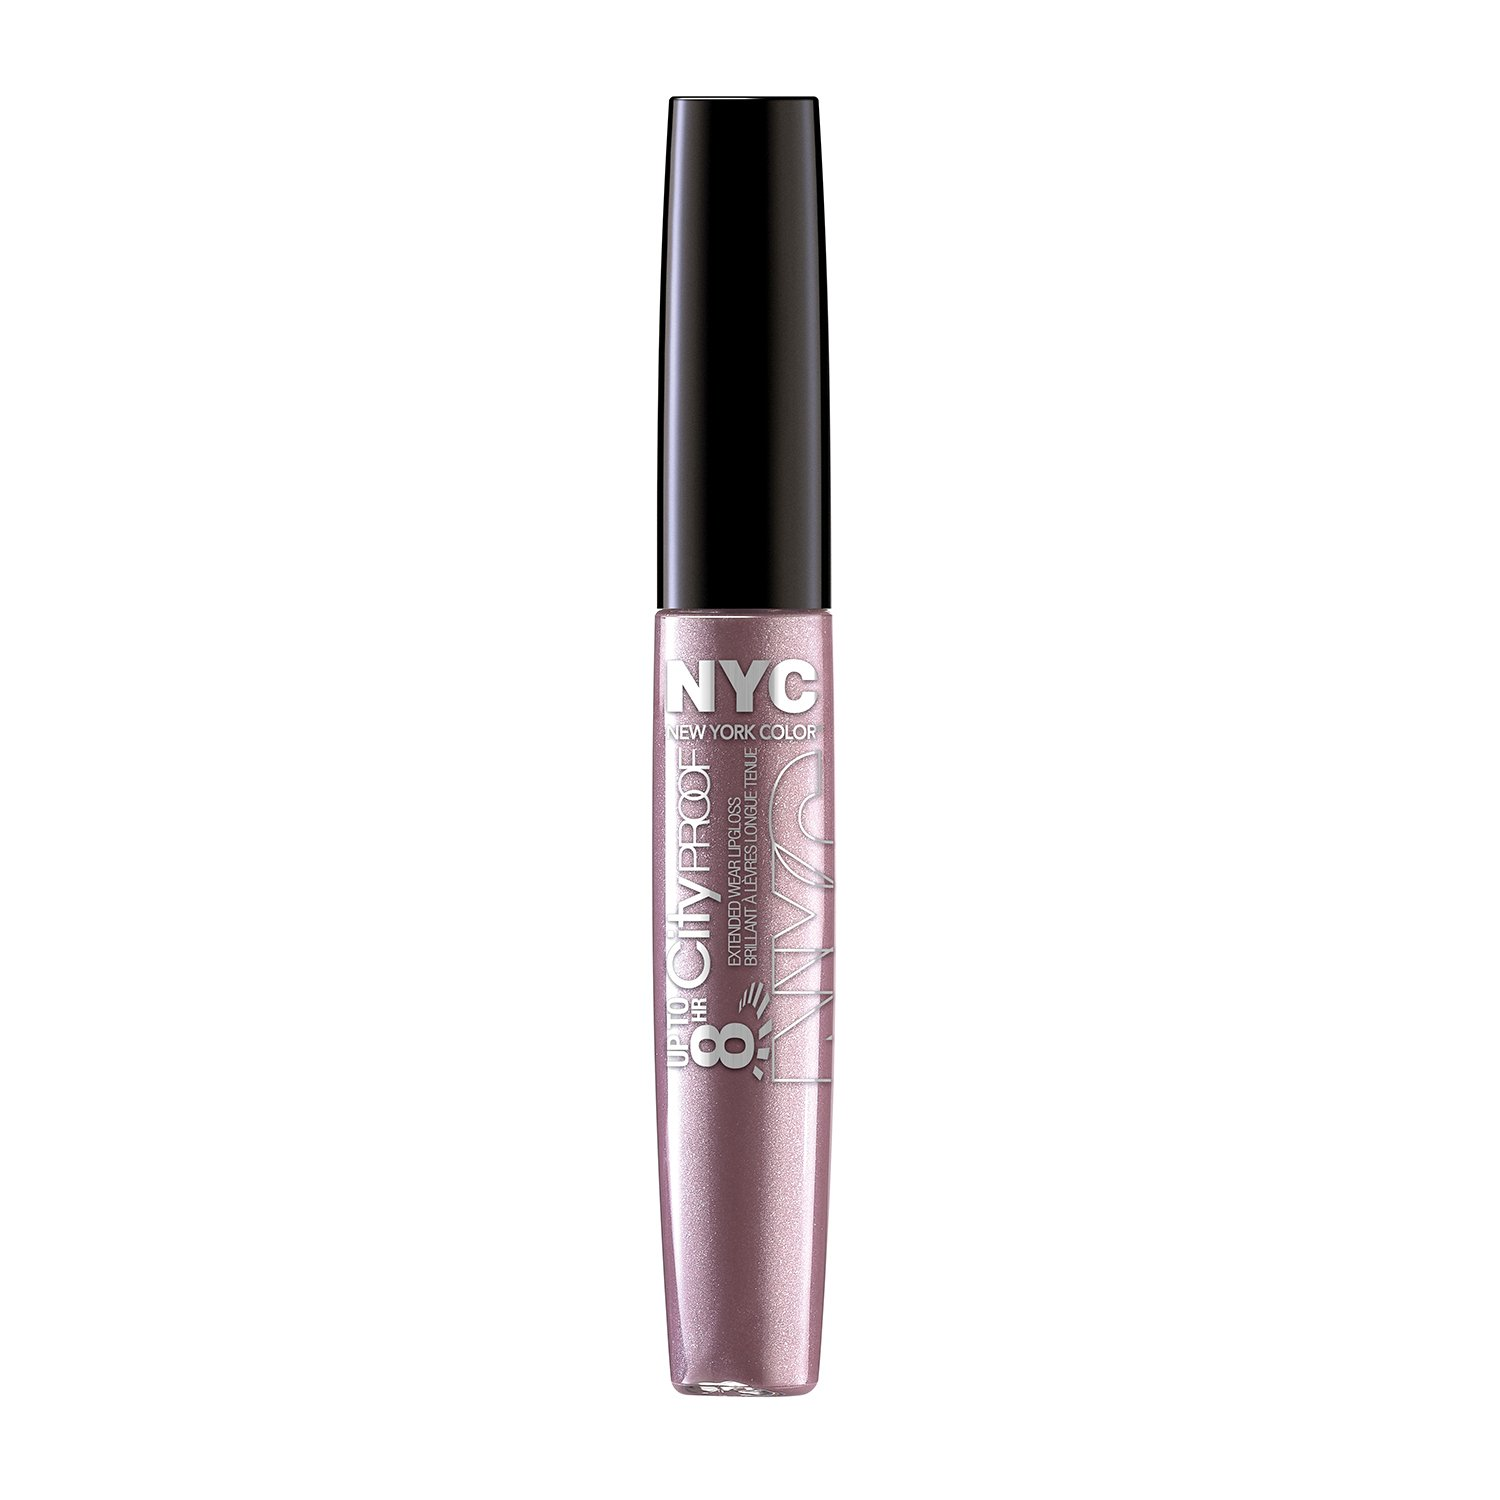 N.Y.C. New York Color 8 HR City Proof Extended Wear Lip Gloss, Blush Forever, 0.22 Fluid Ounce Coty